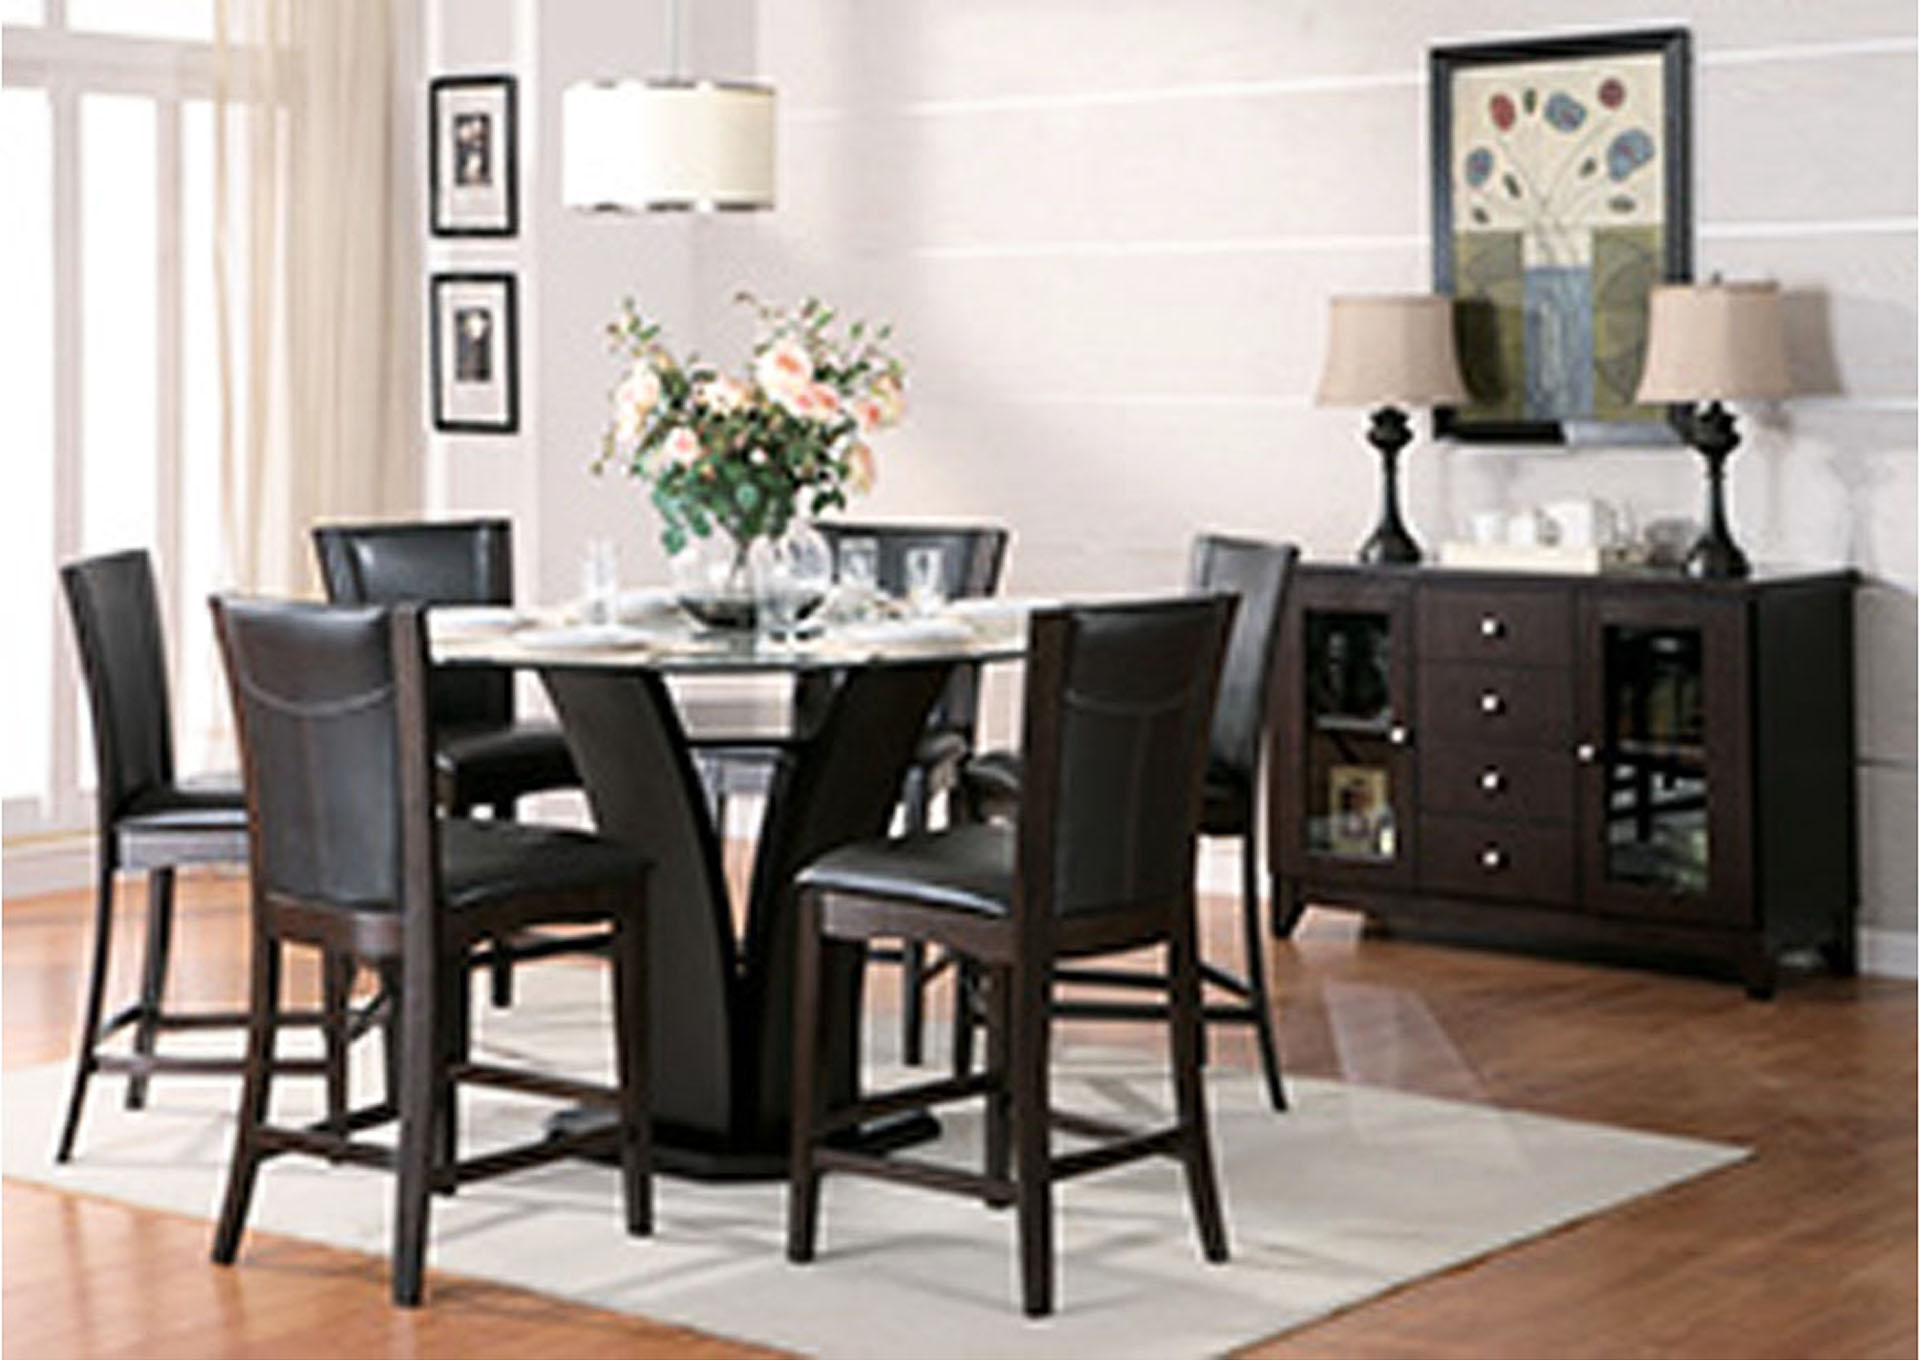 ... Round Glass Top Dining Table W/4 Counter Height Chairs. Daisy 54